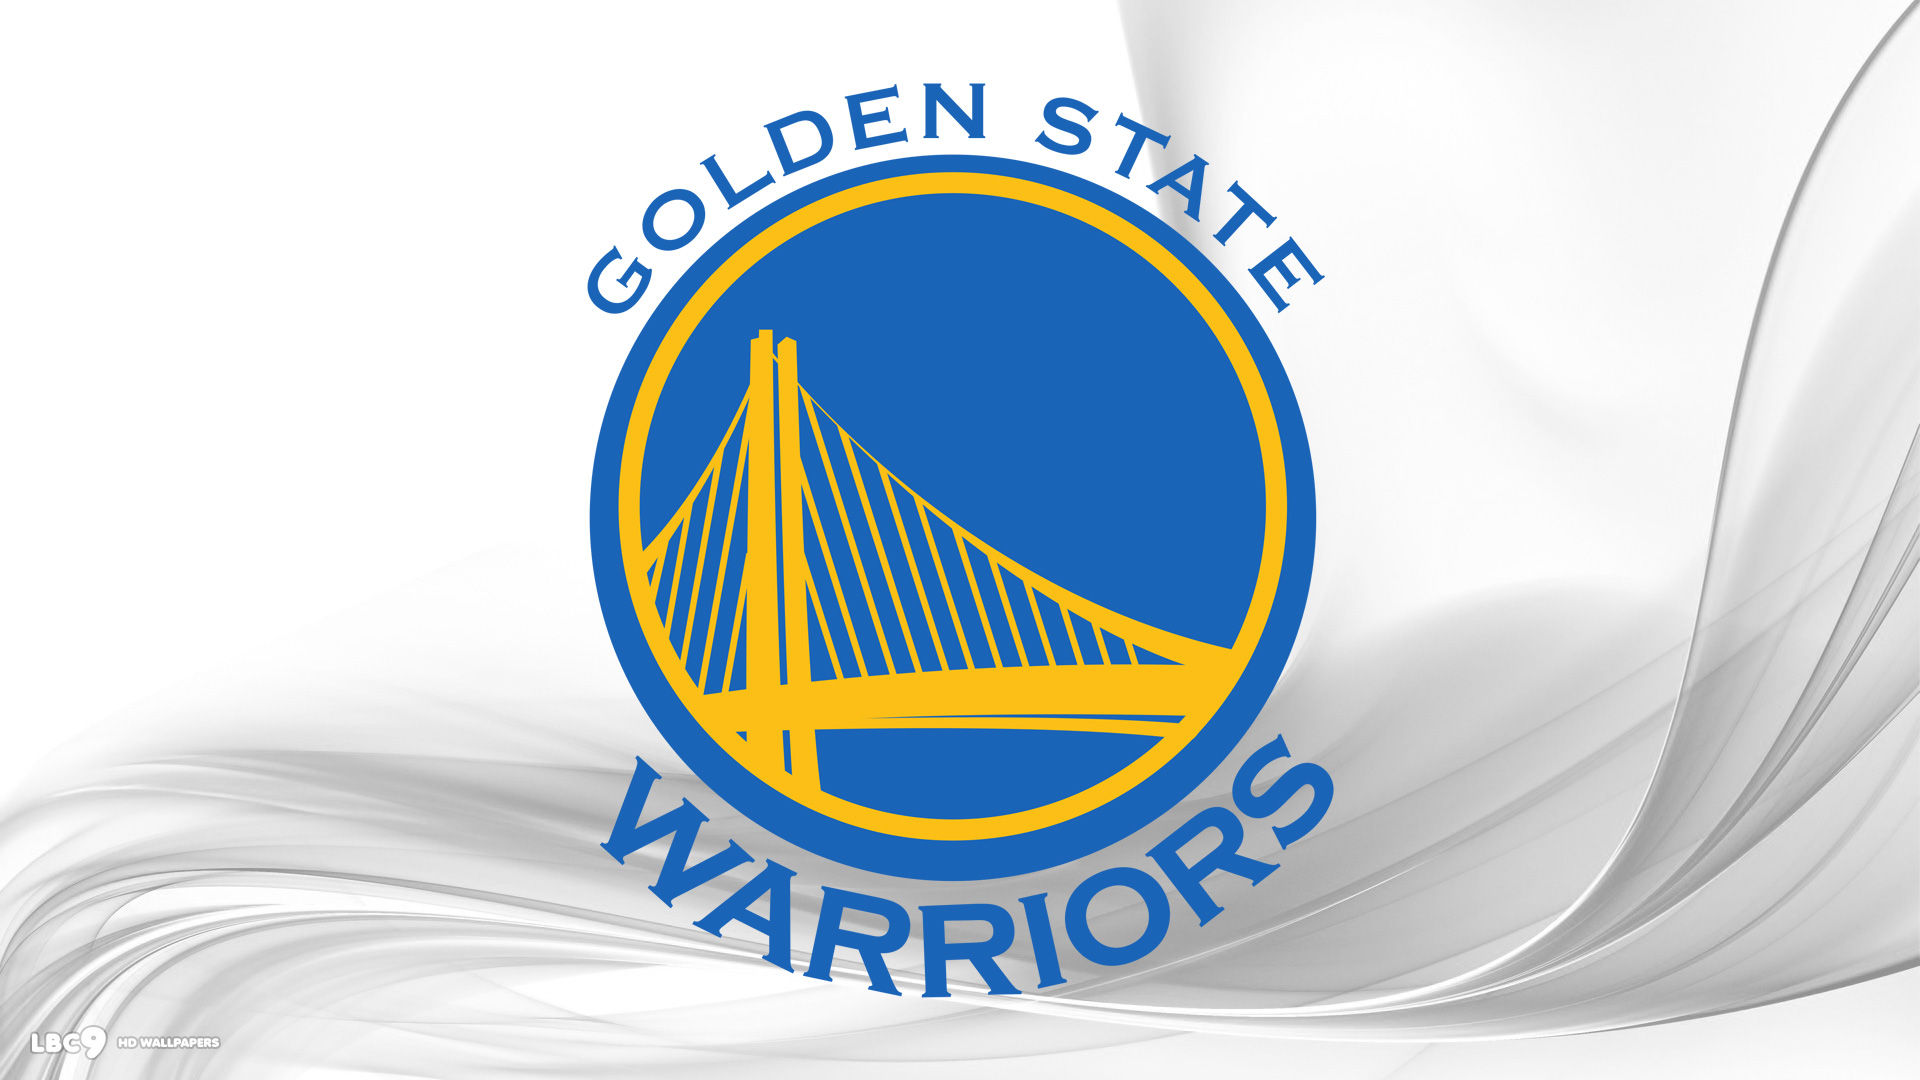 Free Download Golden State Warriors Nba Basketball 1 Wallpaper 1920x1080 1920x1080 For Your Desktop Mobile Tablet Explore 48 Cool Golden State Warriors Wallpaper Cool Golden State Warriors Wallpaper Golden